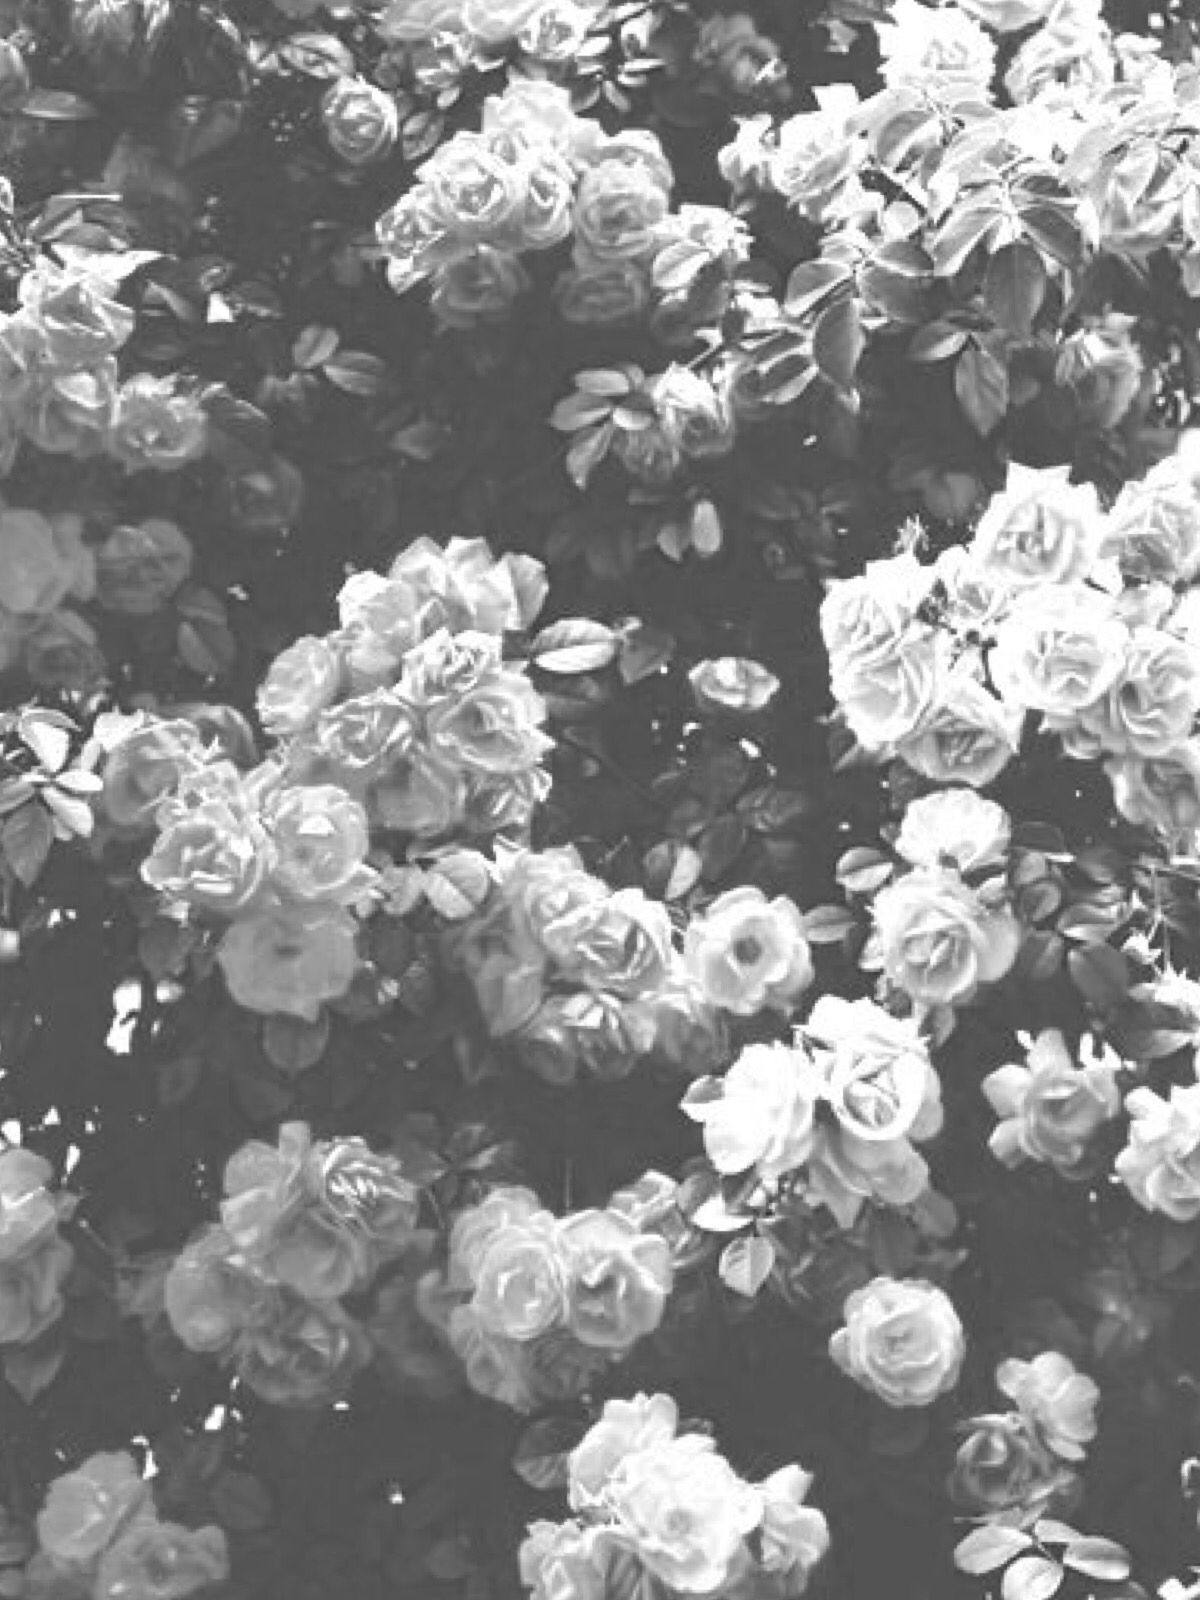 Black And White Aesthetic Flower Wallpapers Top Free Black